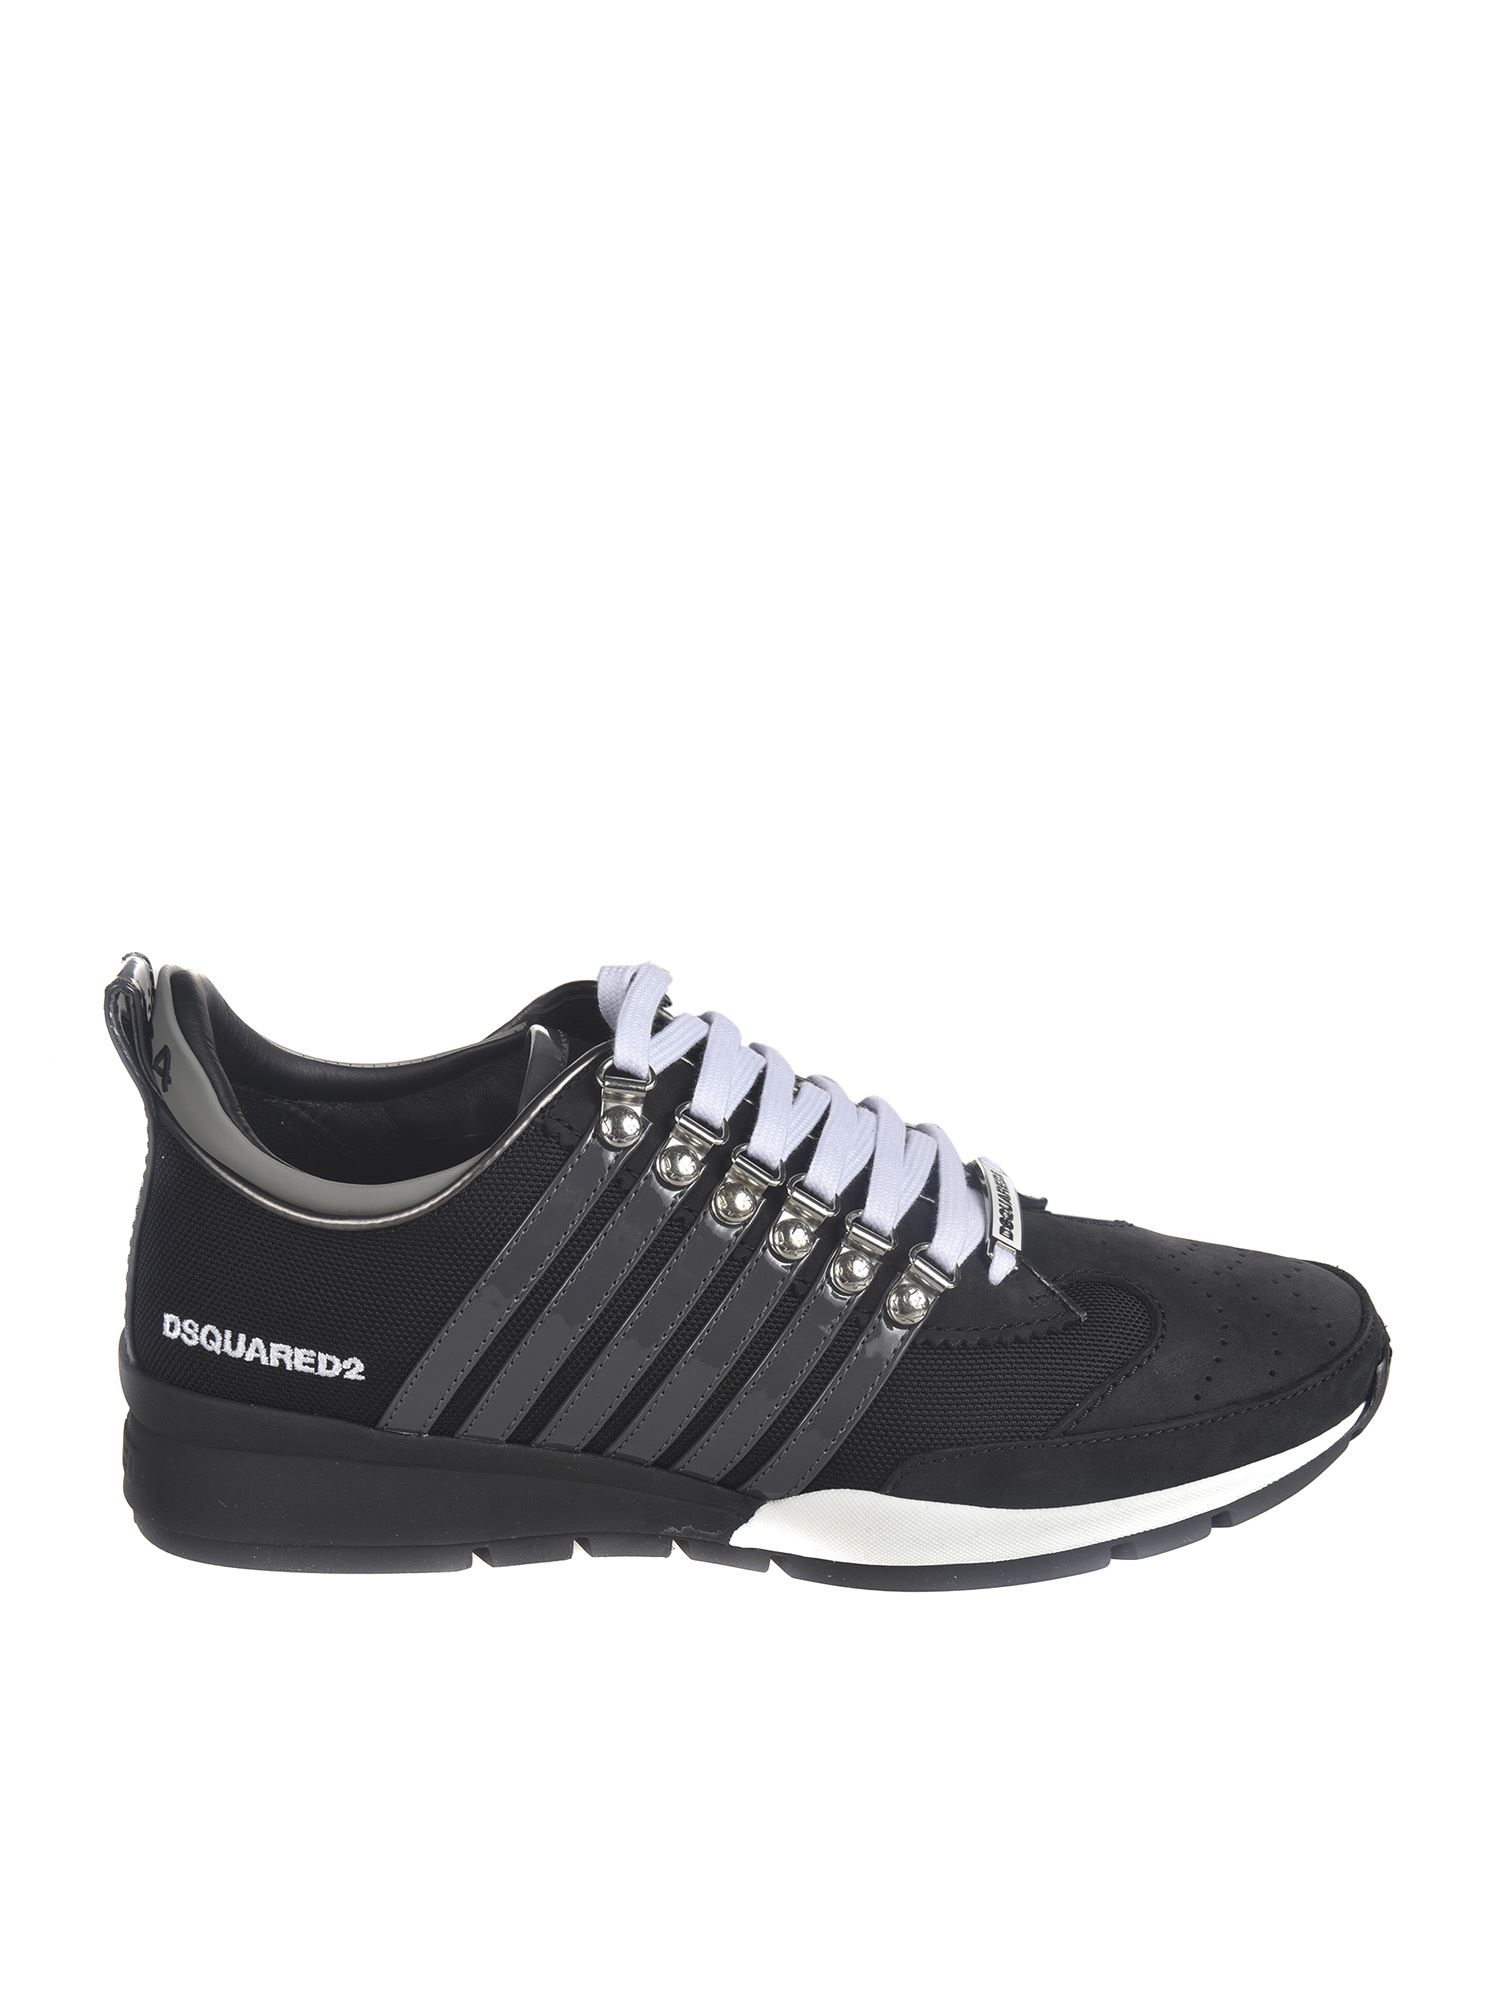 Dsquared2 SNEAKERS WITH PAINTED DETAILS IN BLACK